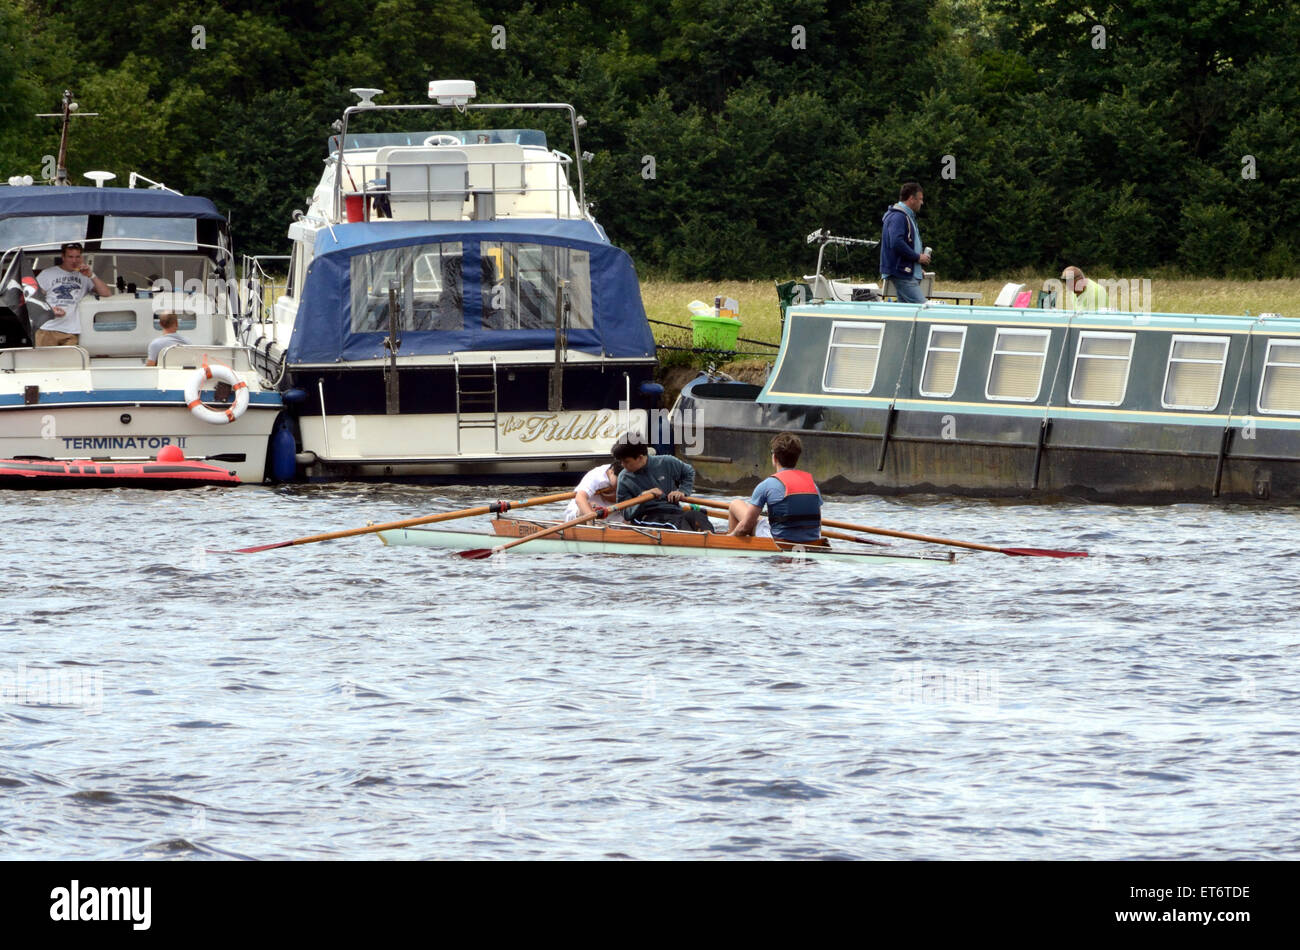 A coxed pair rowing crew row past boats moored on the bank of The River Thames in Windsor. - Stock Image